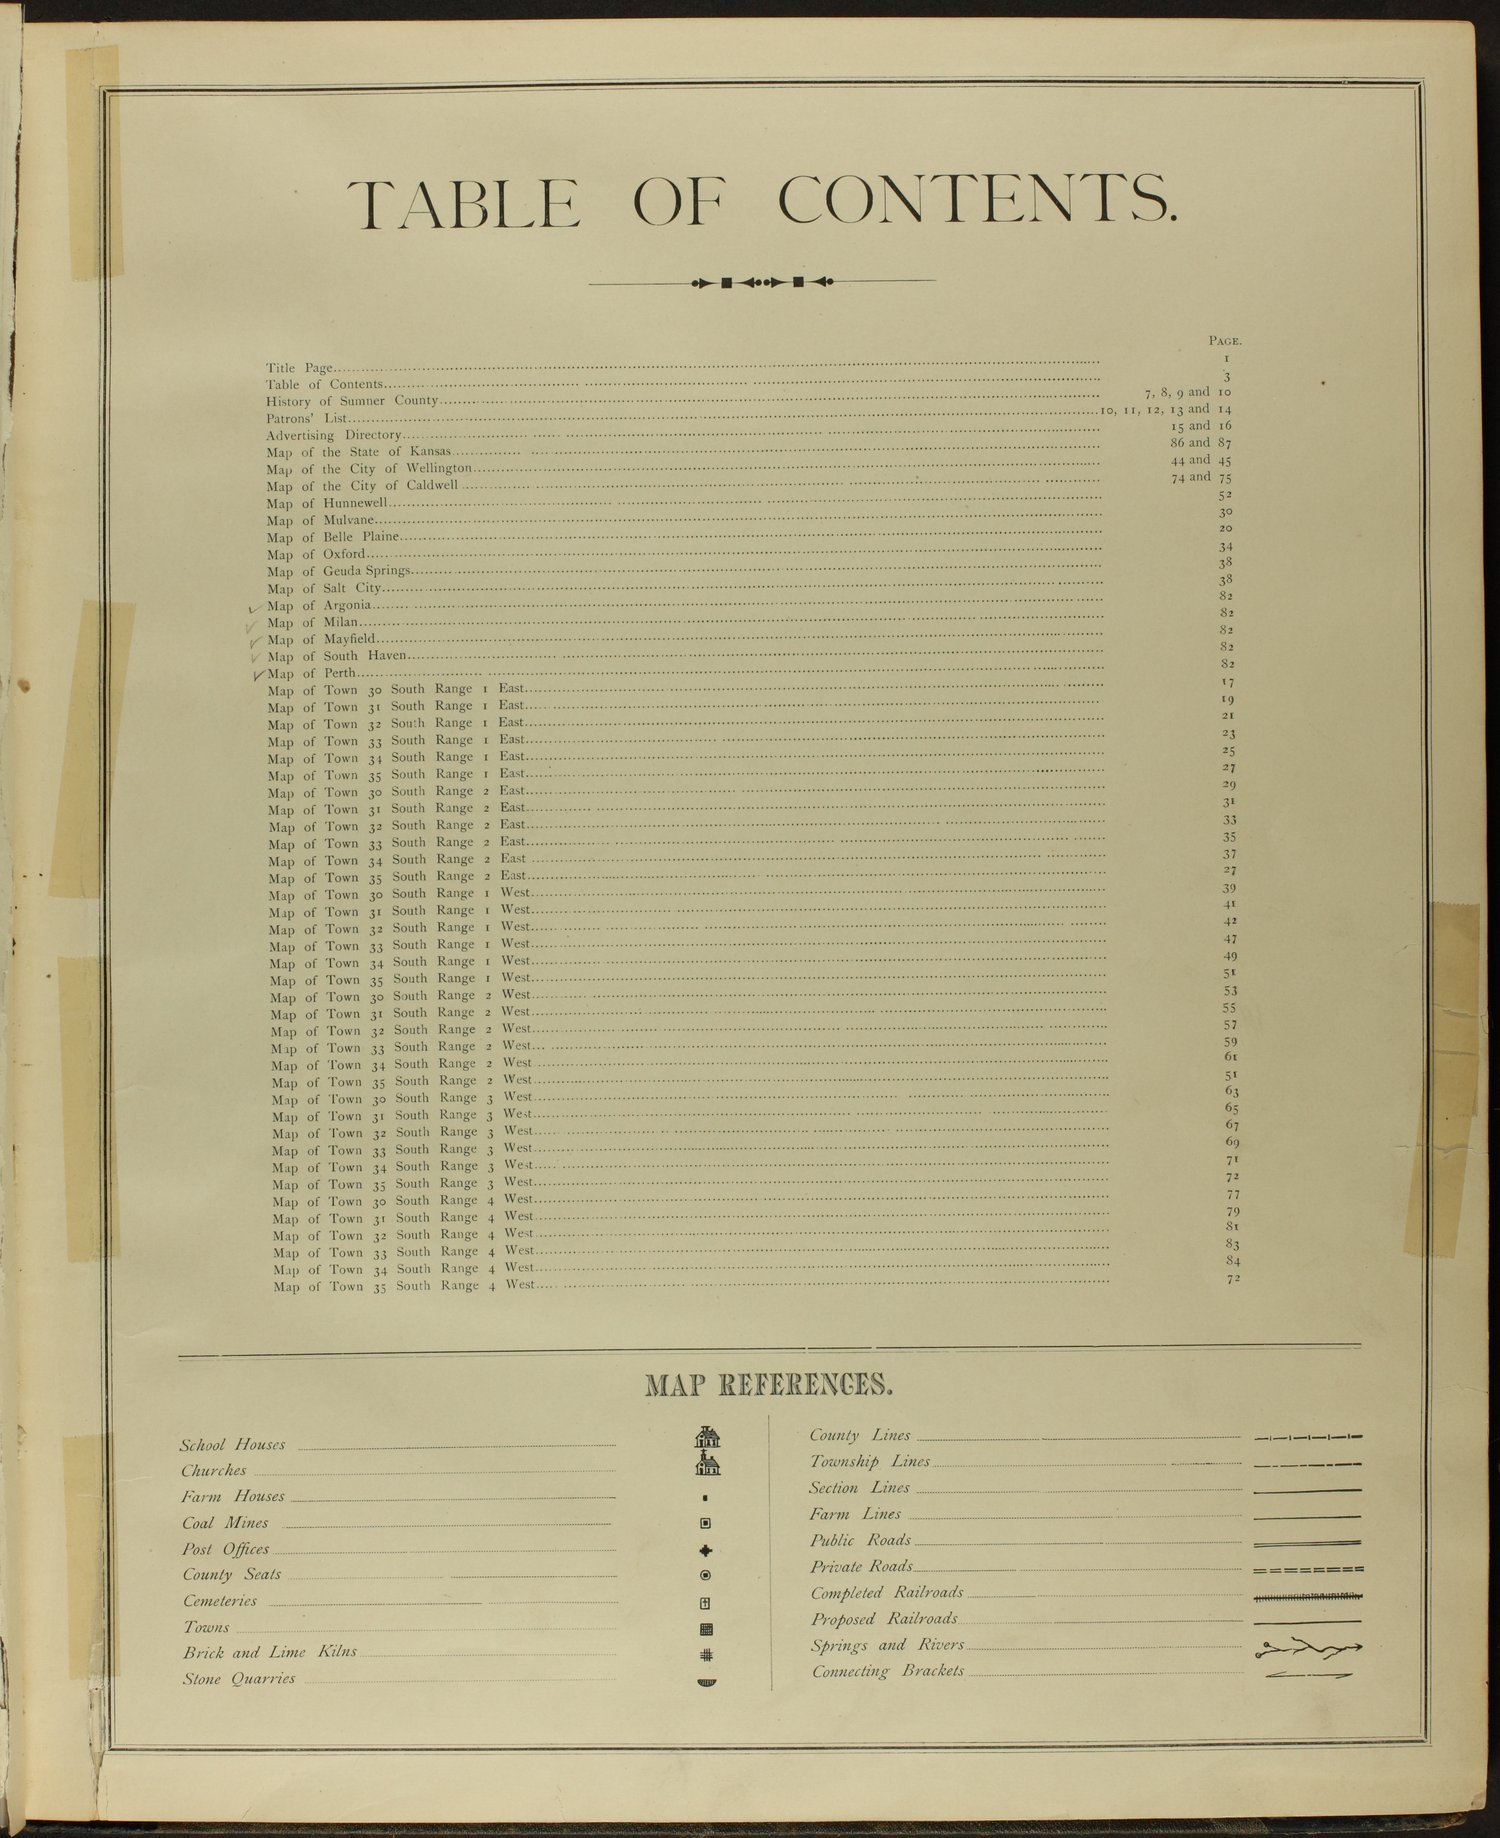 Historical atlas of Sumner County, Kansas - Table of Contents